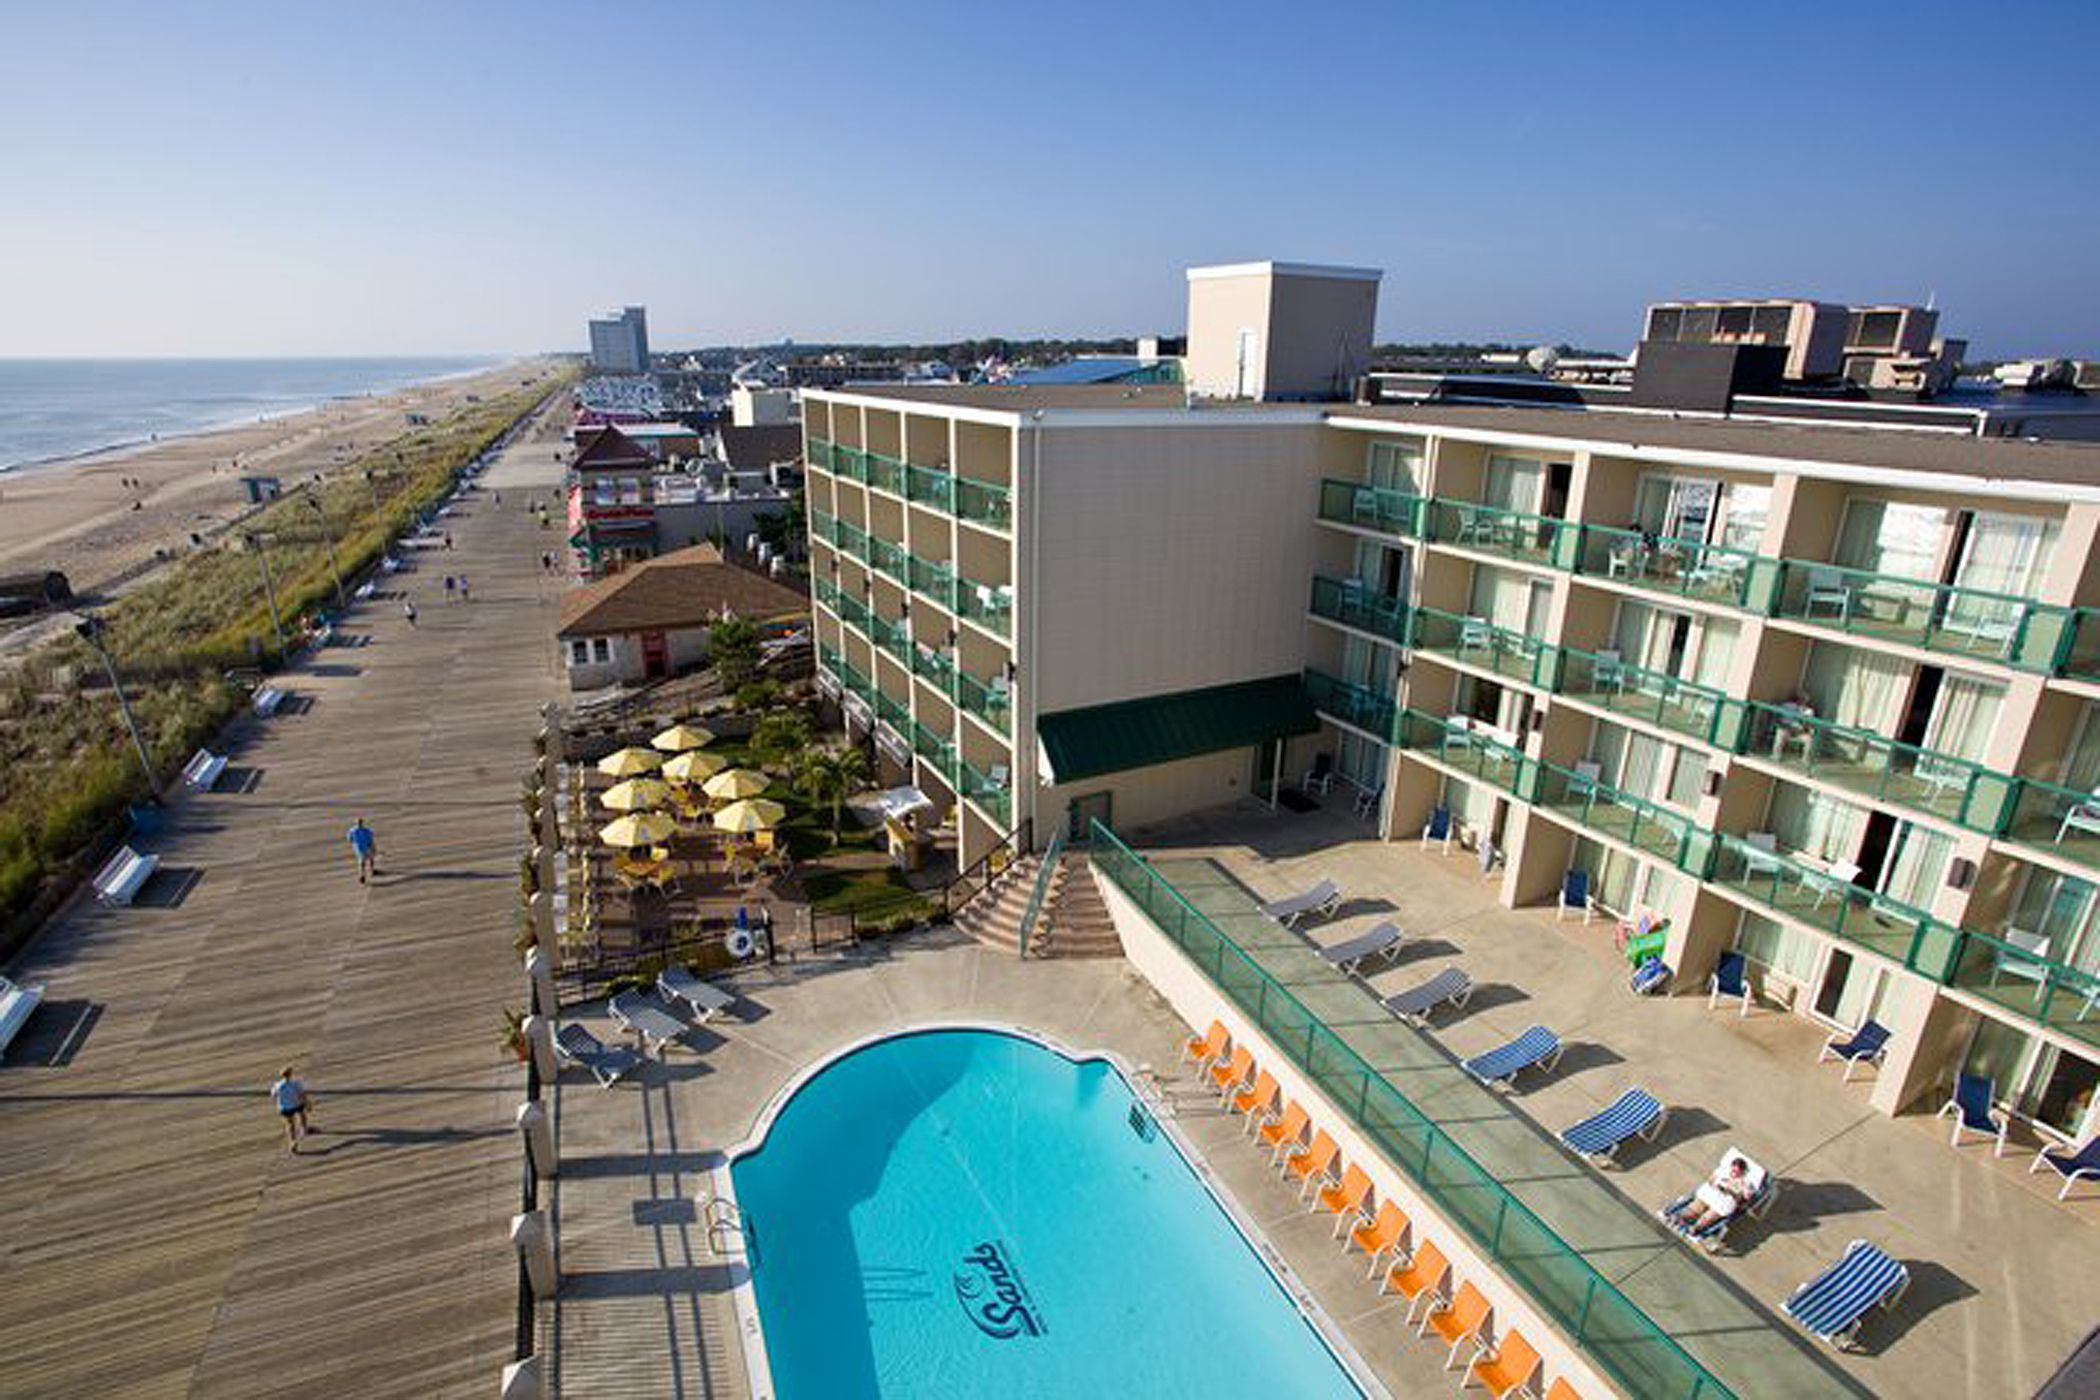 The Atlantic Sands Hotel In Rehoboth Beach Has A History Of Excellence And Superior Customer Service